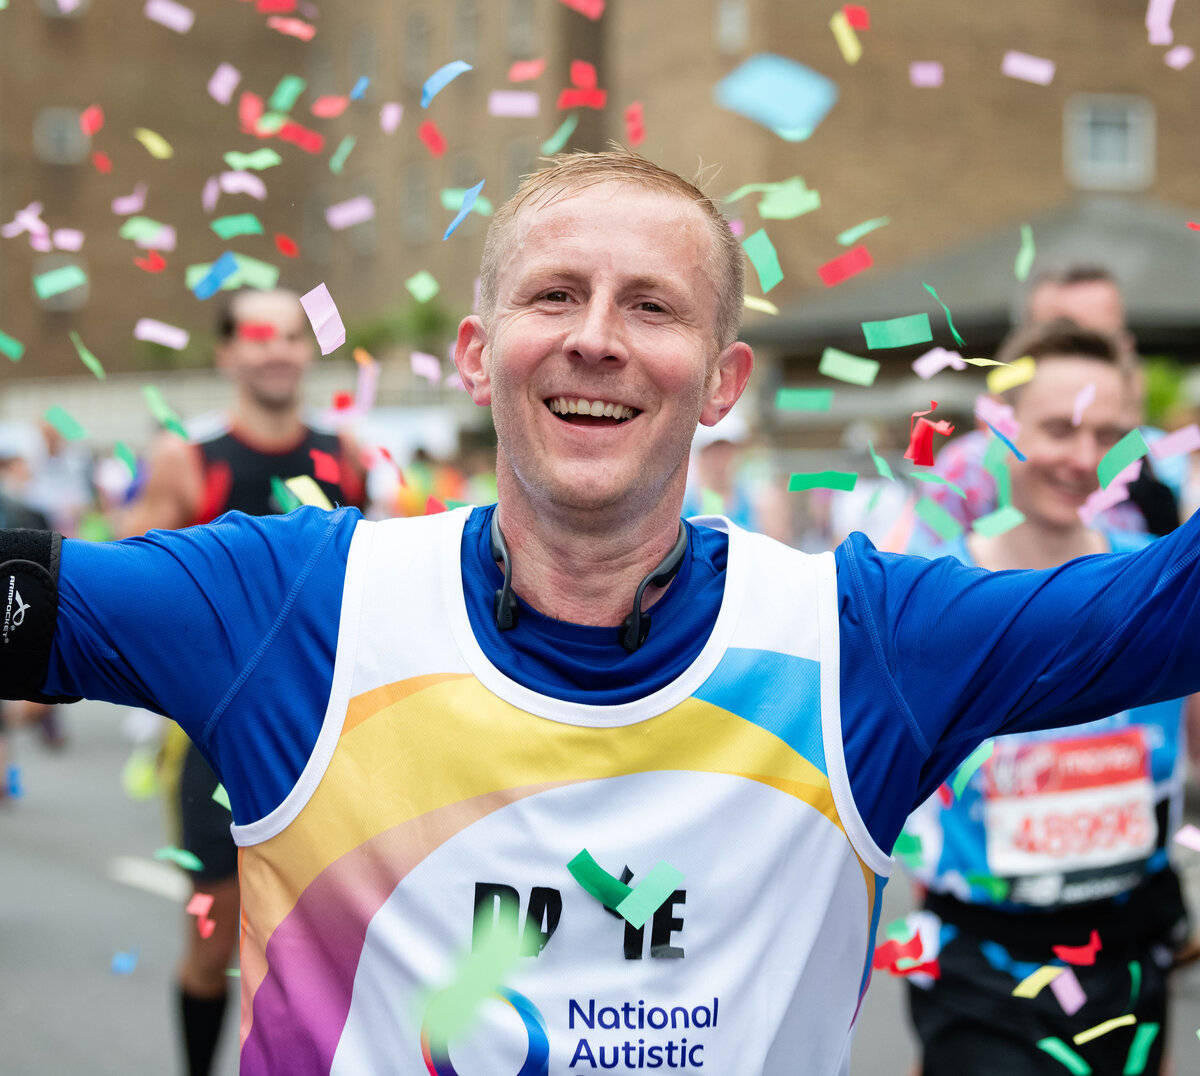 Congratulations to all #TeamAutism runners who did a fantastic job yesterday raising money for the National Autistic Society at the London Marathon! // Photos by www.sportsphotographer.co.uk | @sportsphotographyuk